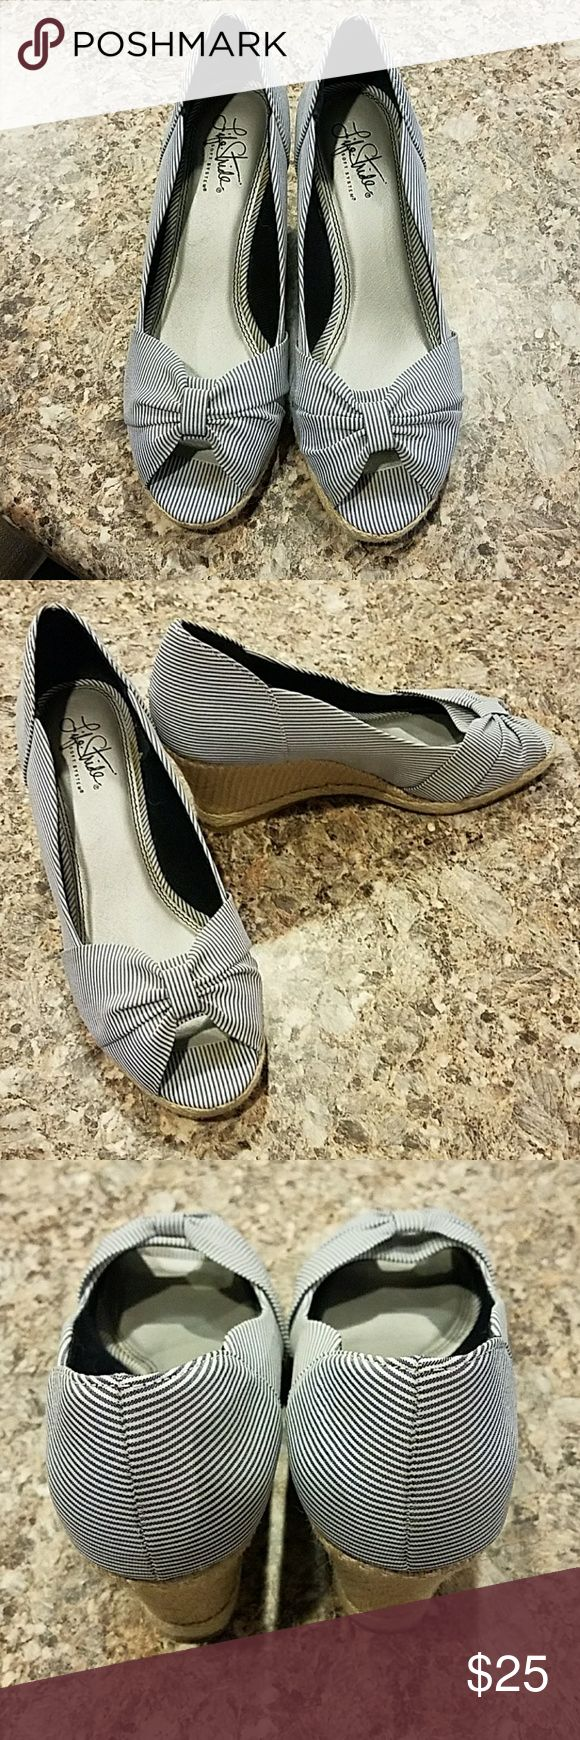 Life Stride Striped Wedges Very cushion and great for dresses, jeans, or shorts. Life Stride Shoes Wedges